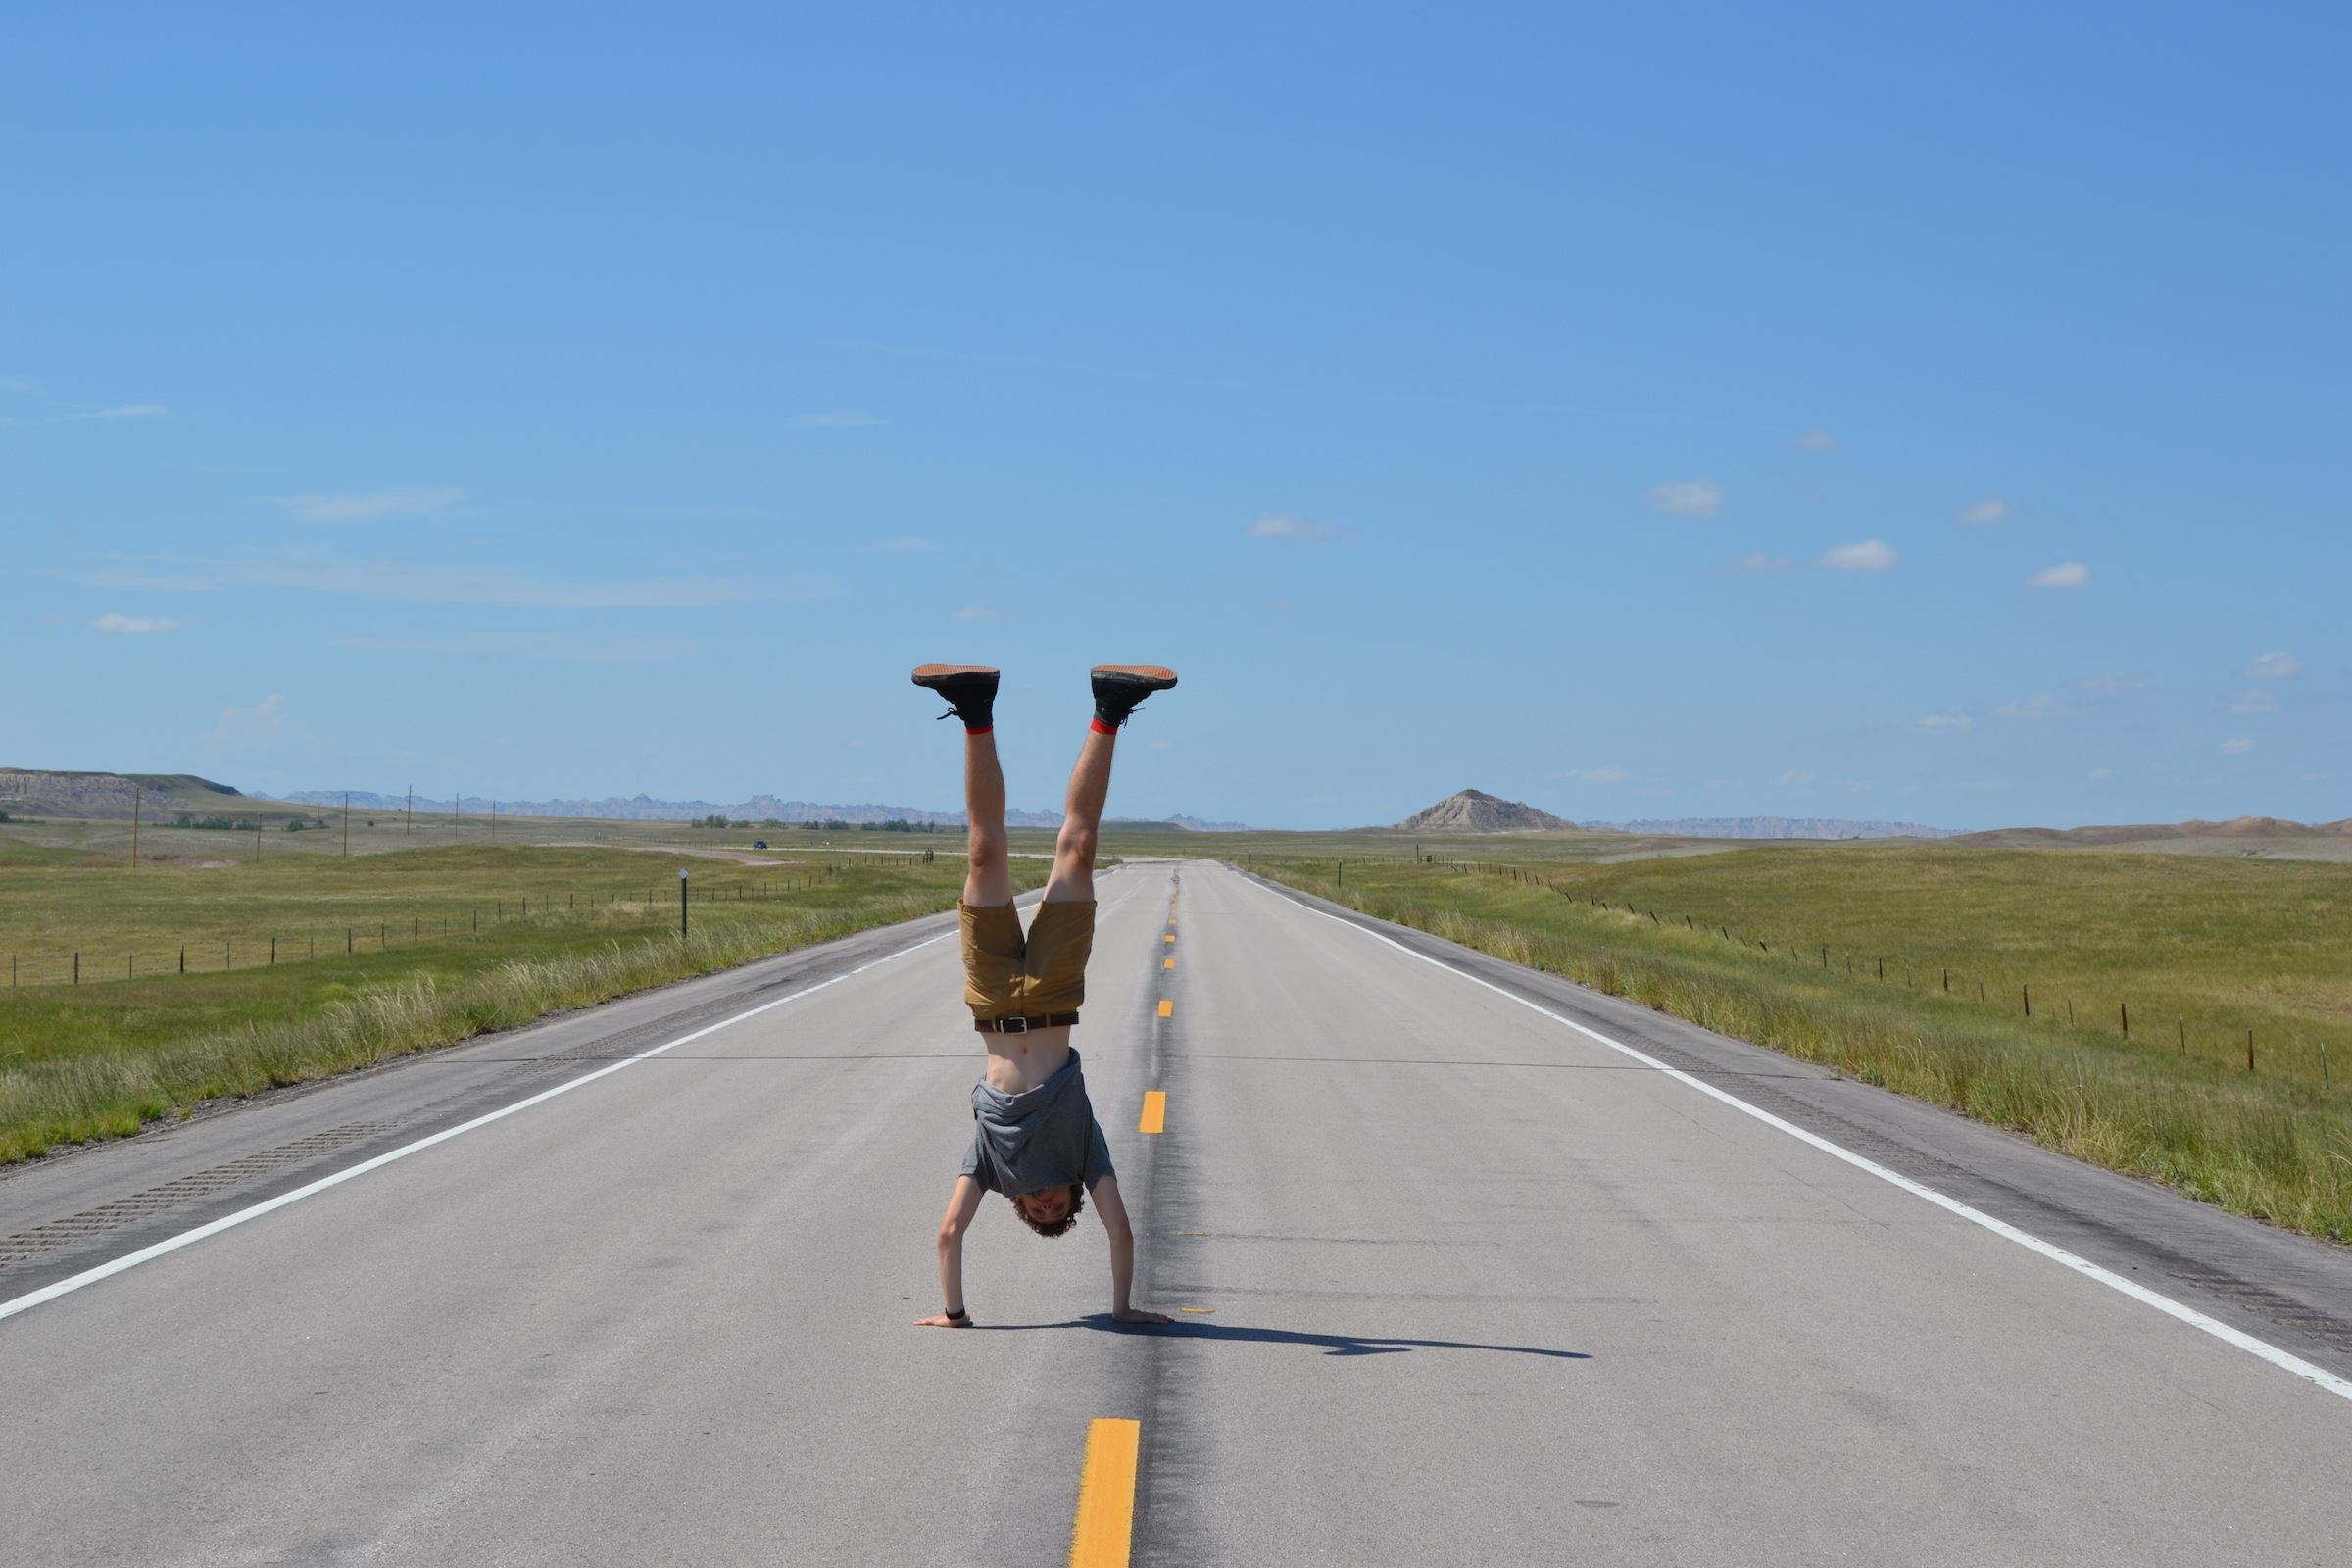 Do a handstand in the middle of the road